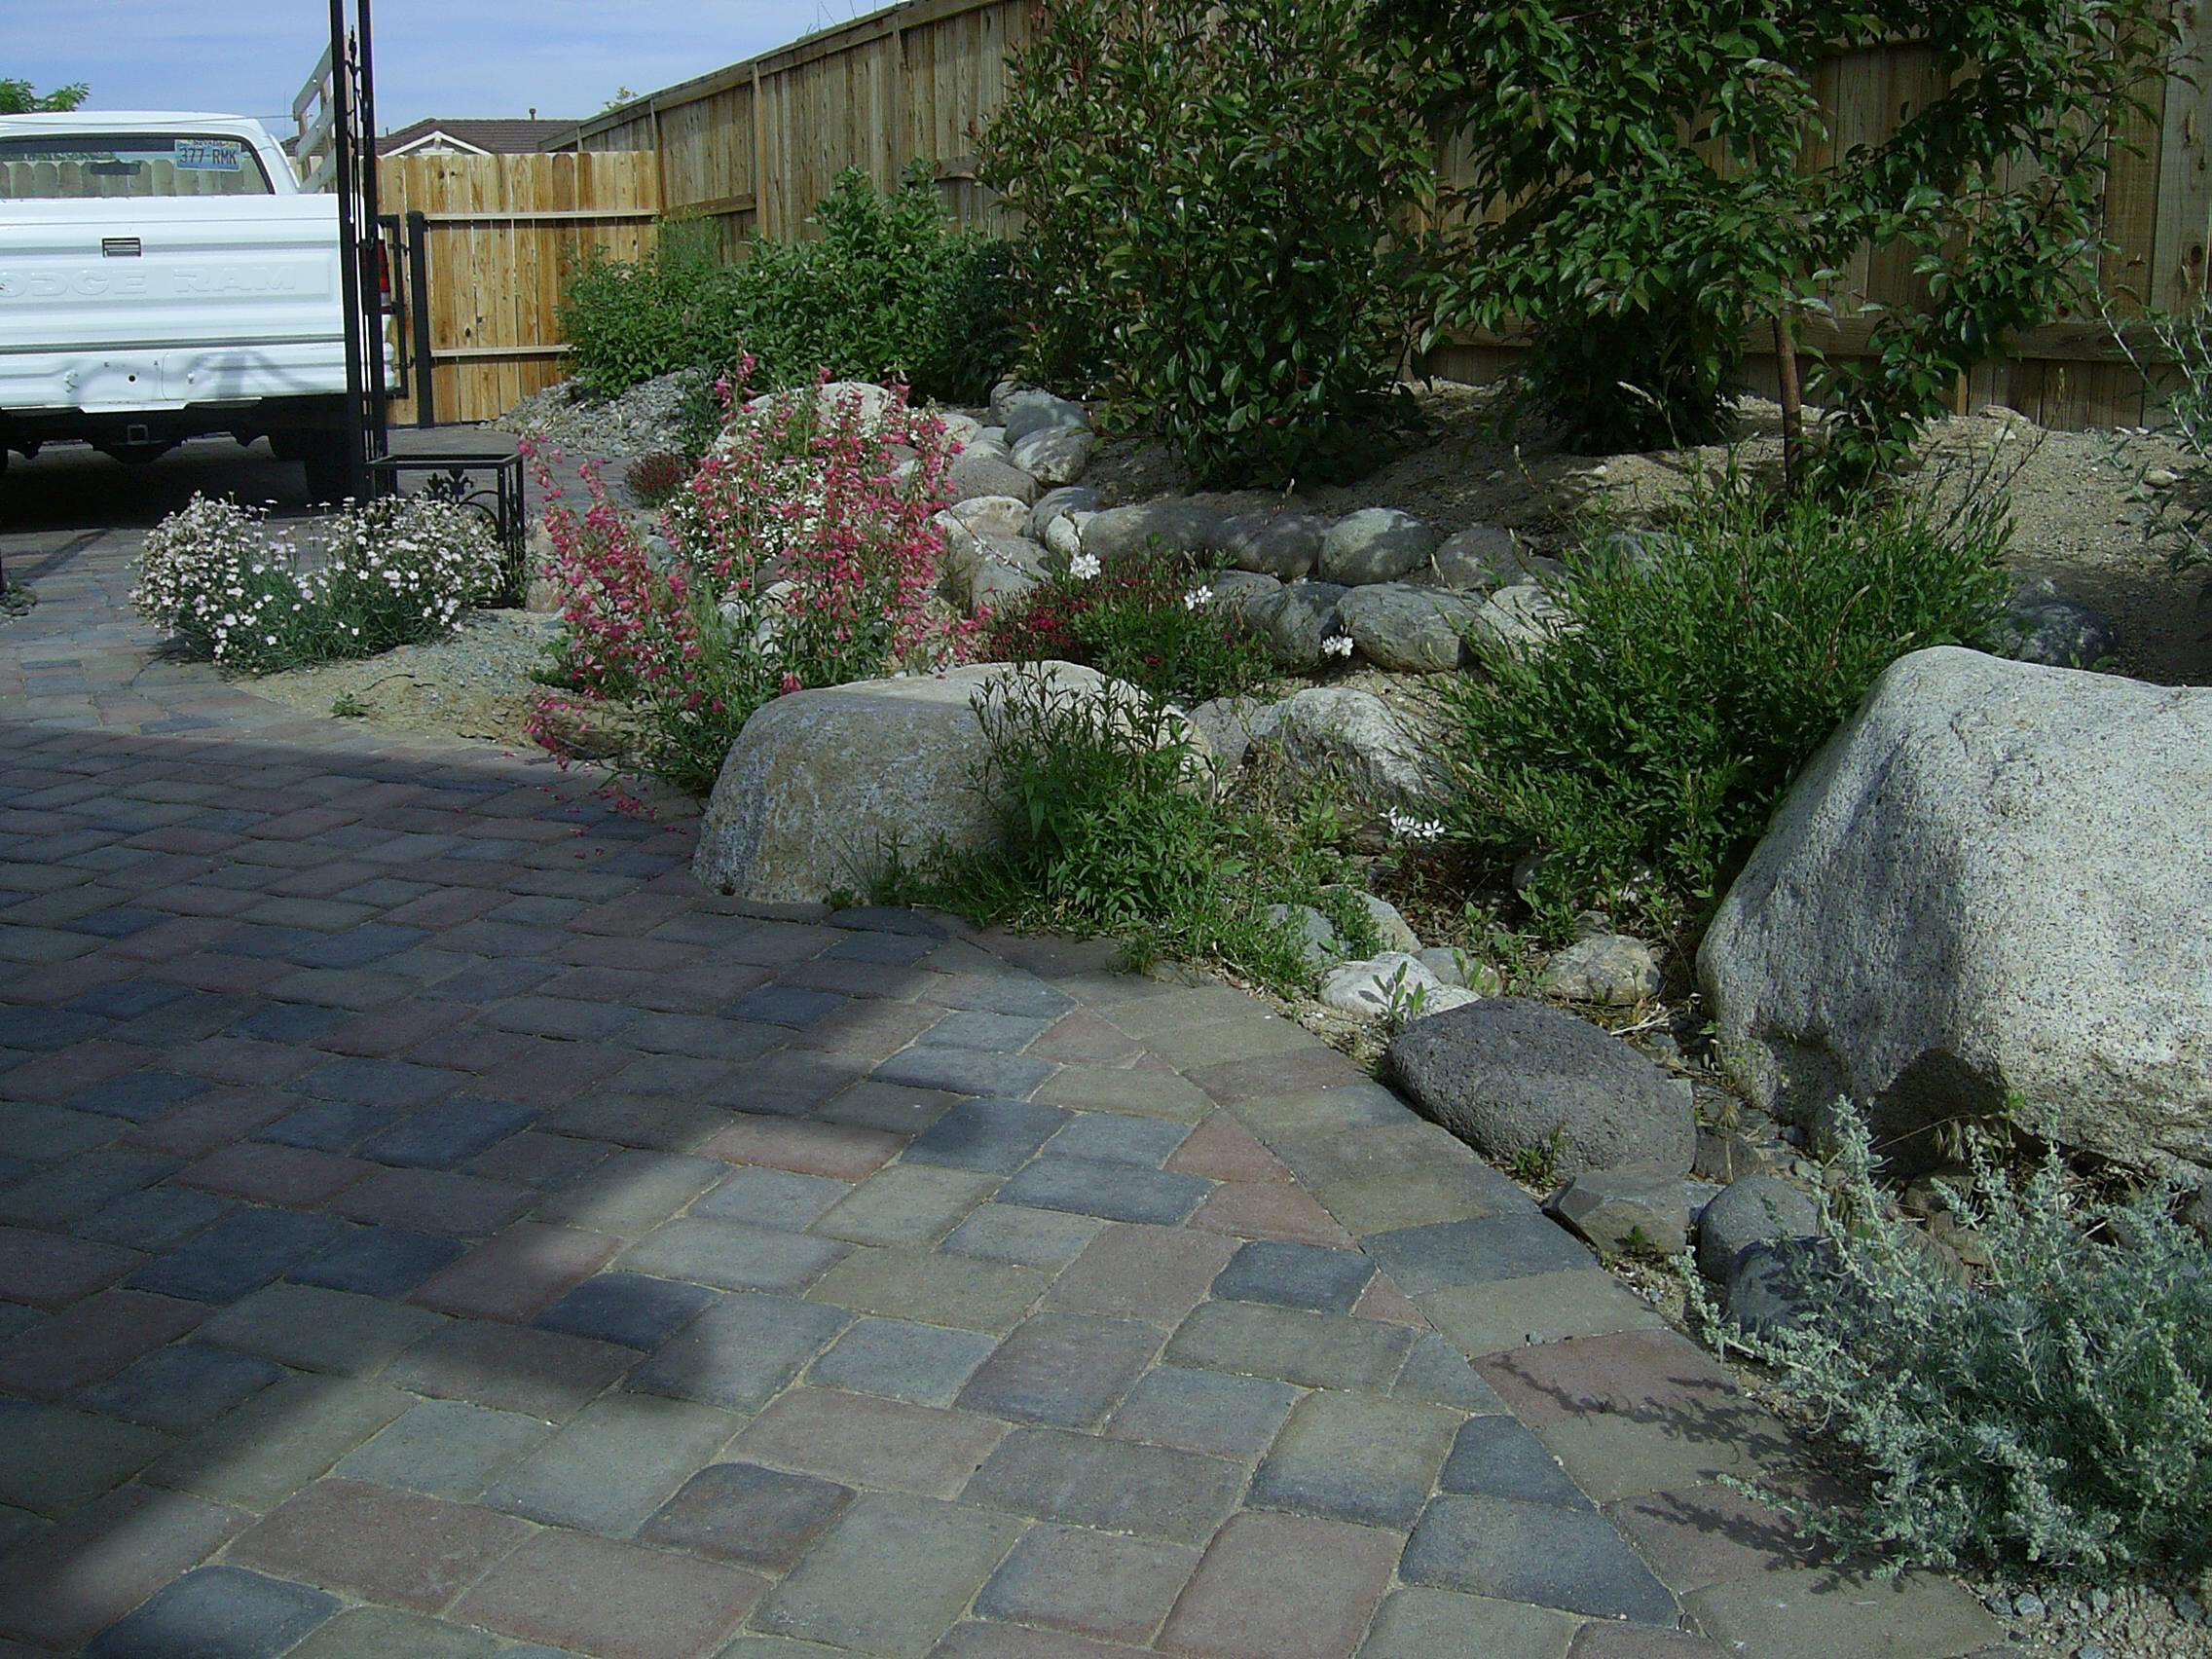 Cut Landscaping Bricks : Cutting brick pavers how we do it steve snedeker s landscaping